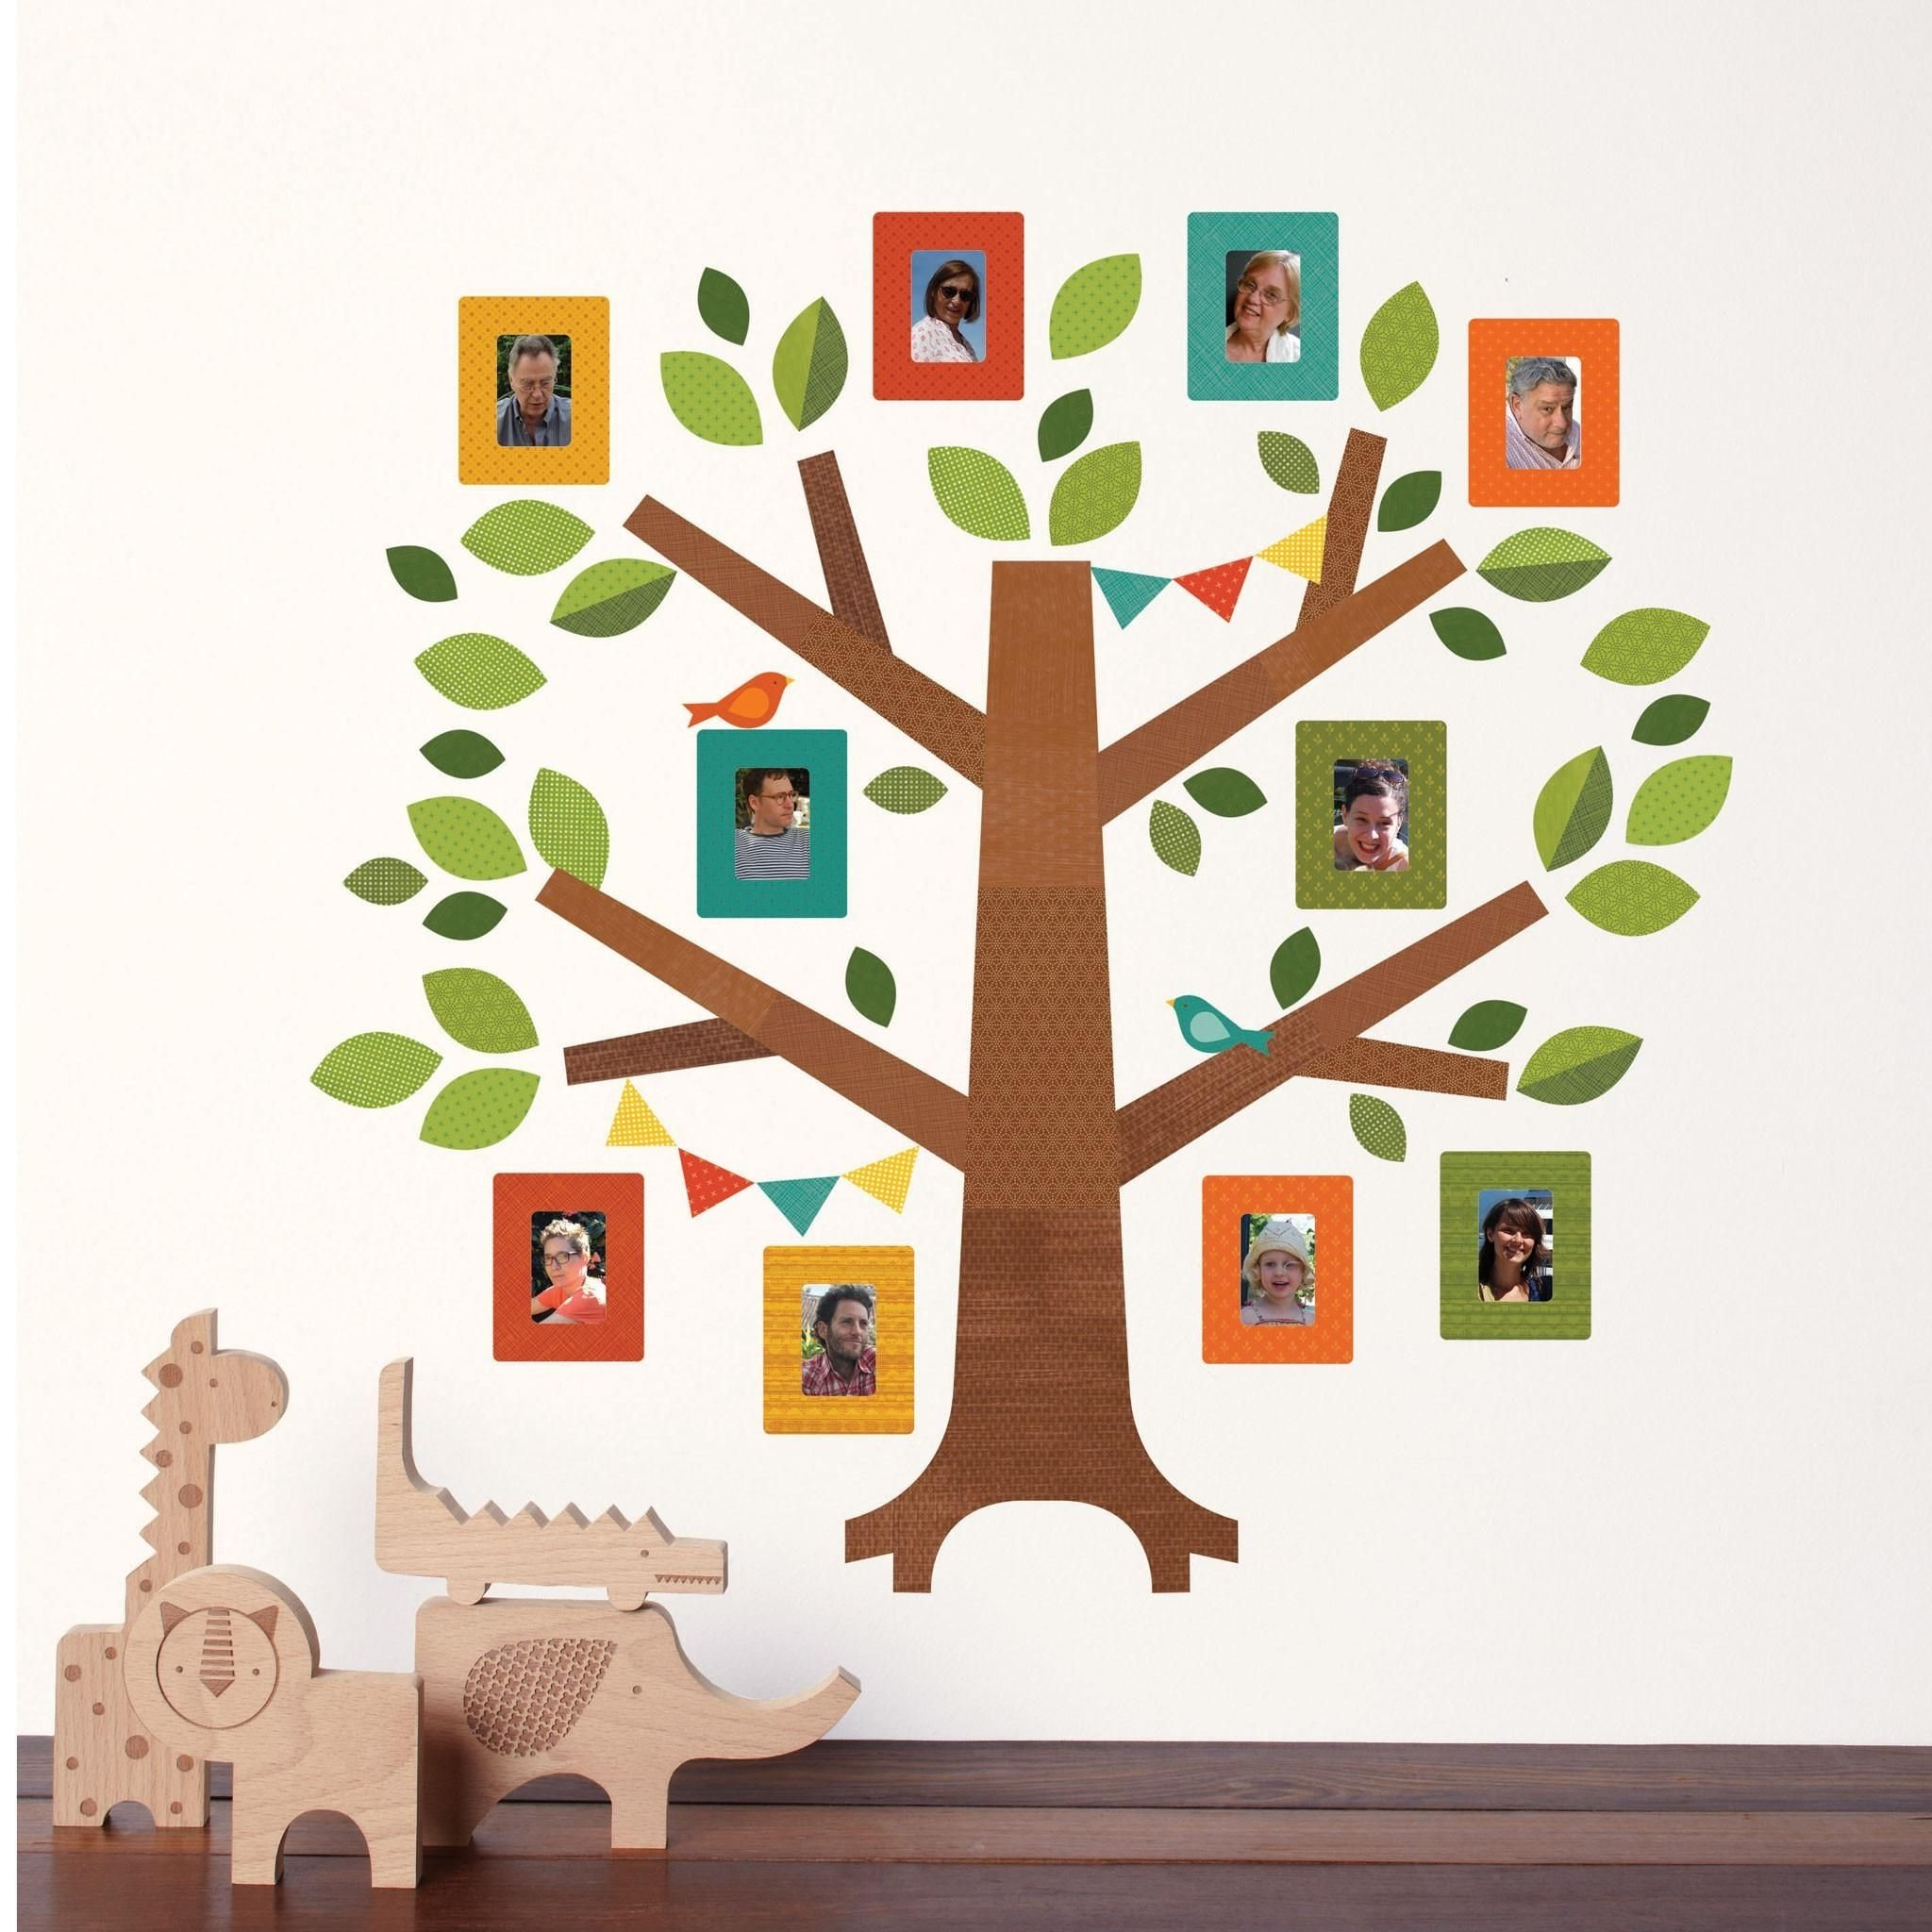 10 Stunning Family Tree Ideas For Kids pinmagda kerameida on baby stuff pinterest